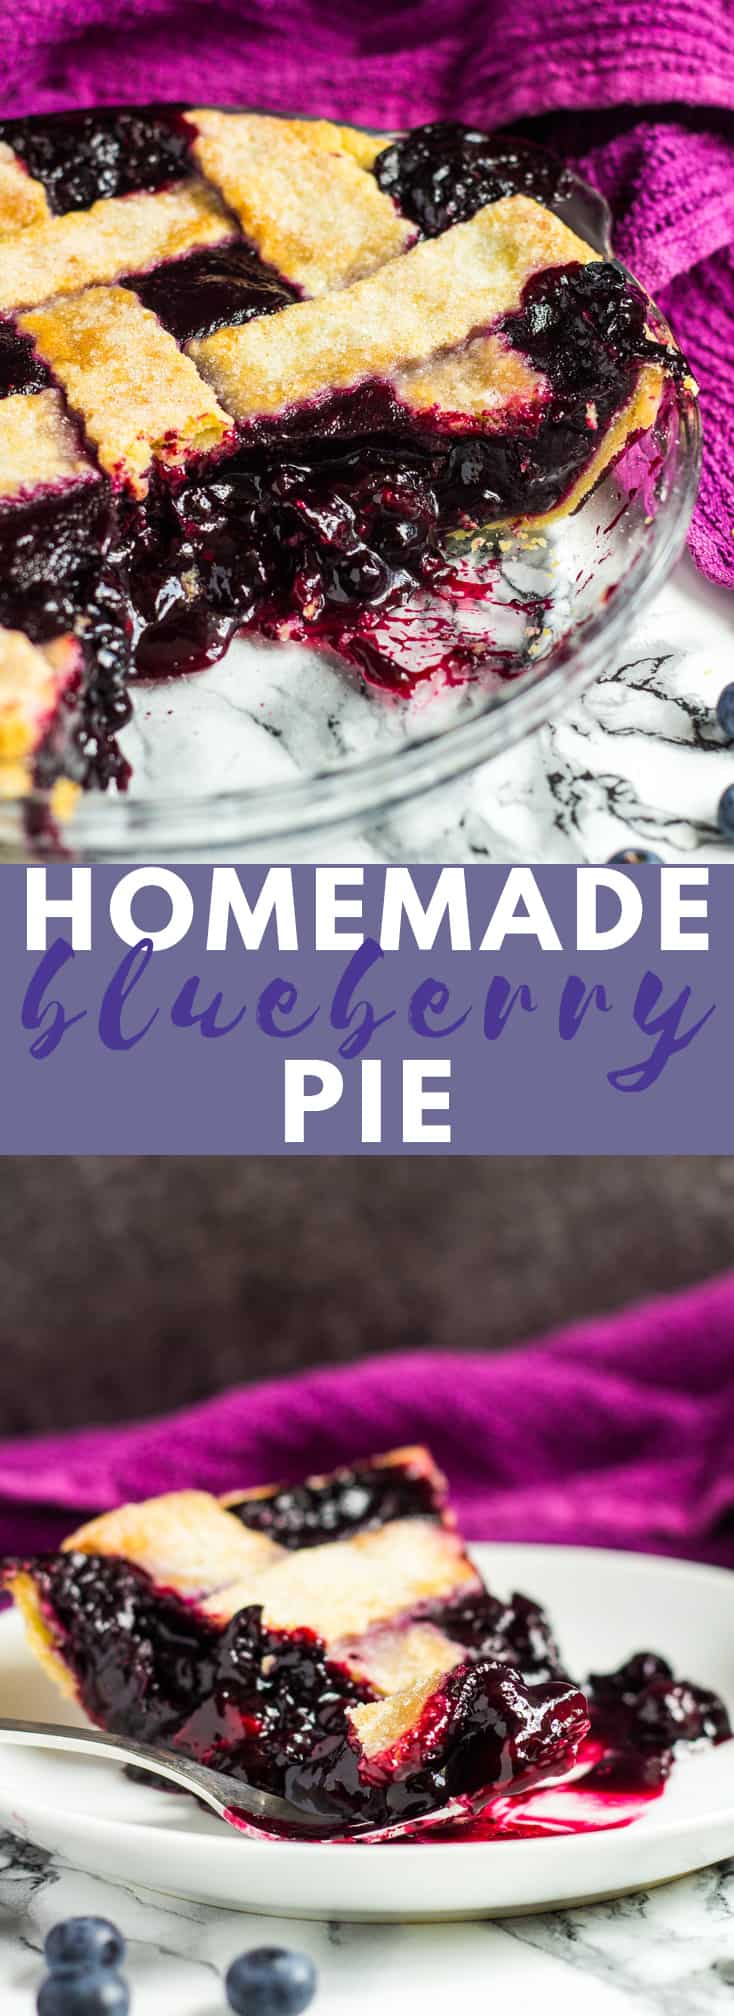 Homemade Blueberry Pie - A deliciously flaky, all-butter pie crust filled with a sweet, homemade blueberry filling! #homemade #blueberrypie #recipe